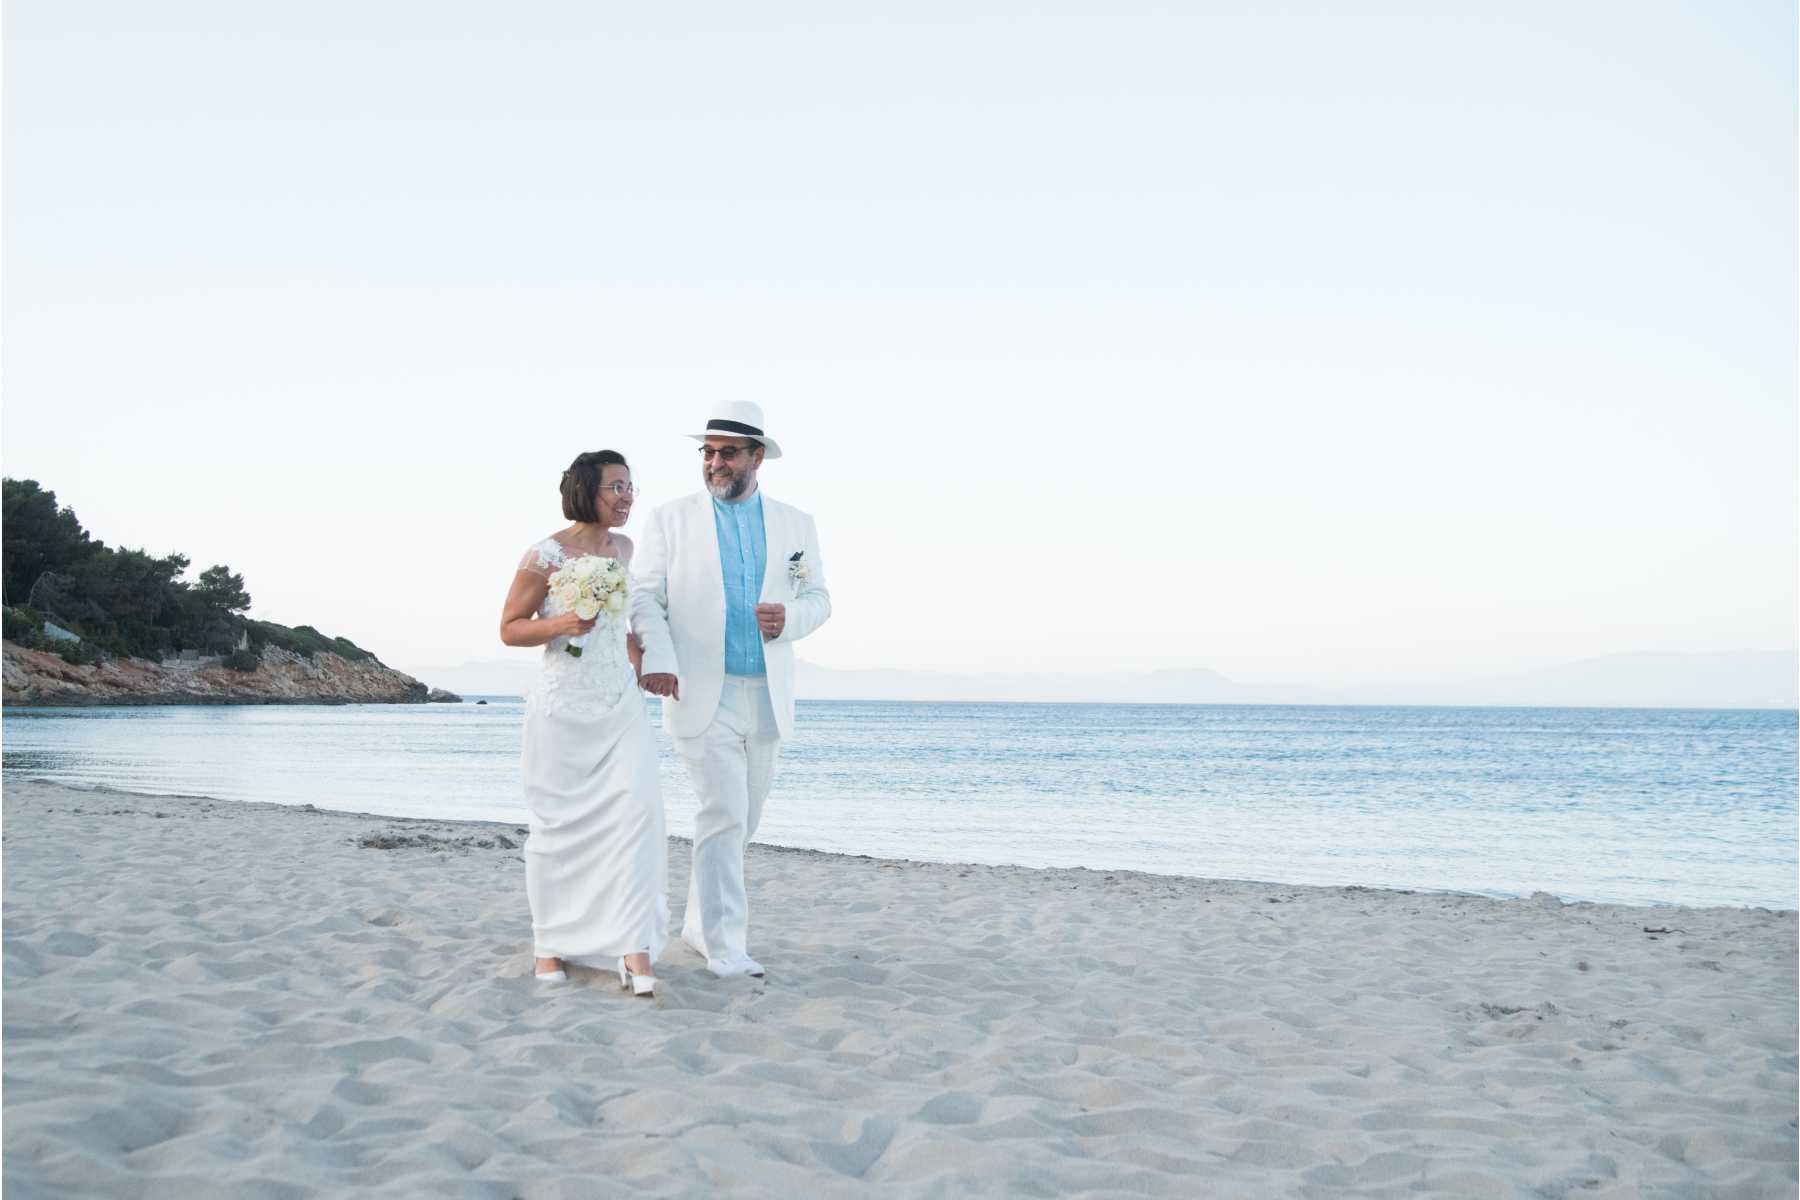 Bride and Groom Romance in Sardinia - Photo 4